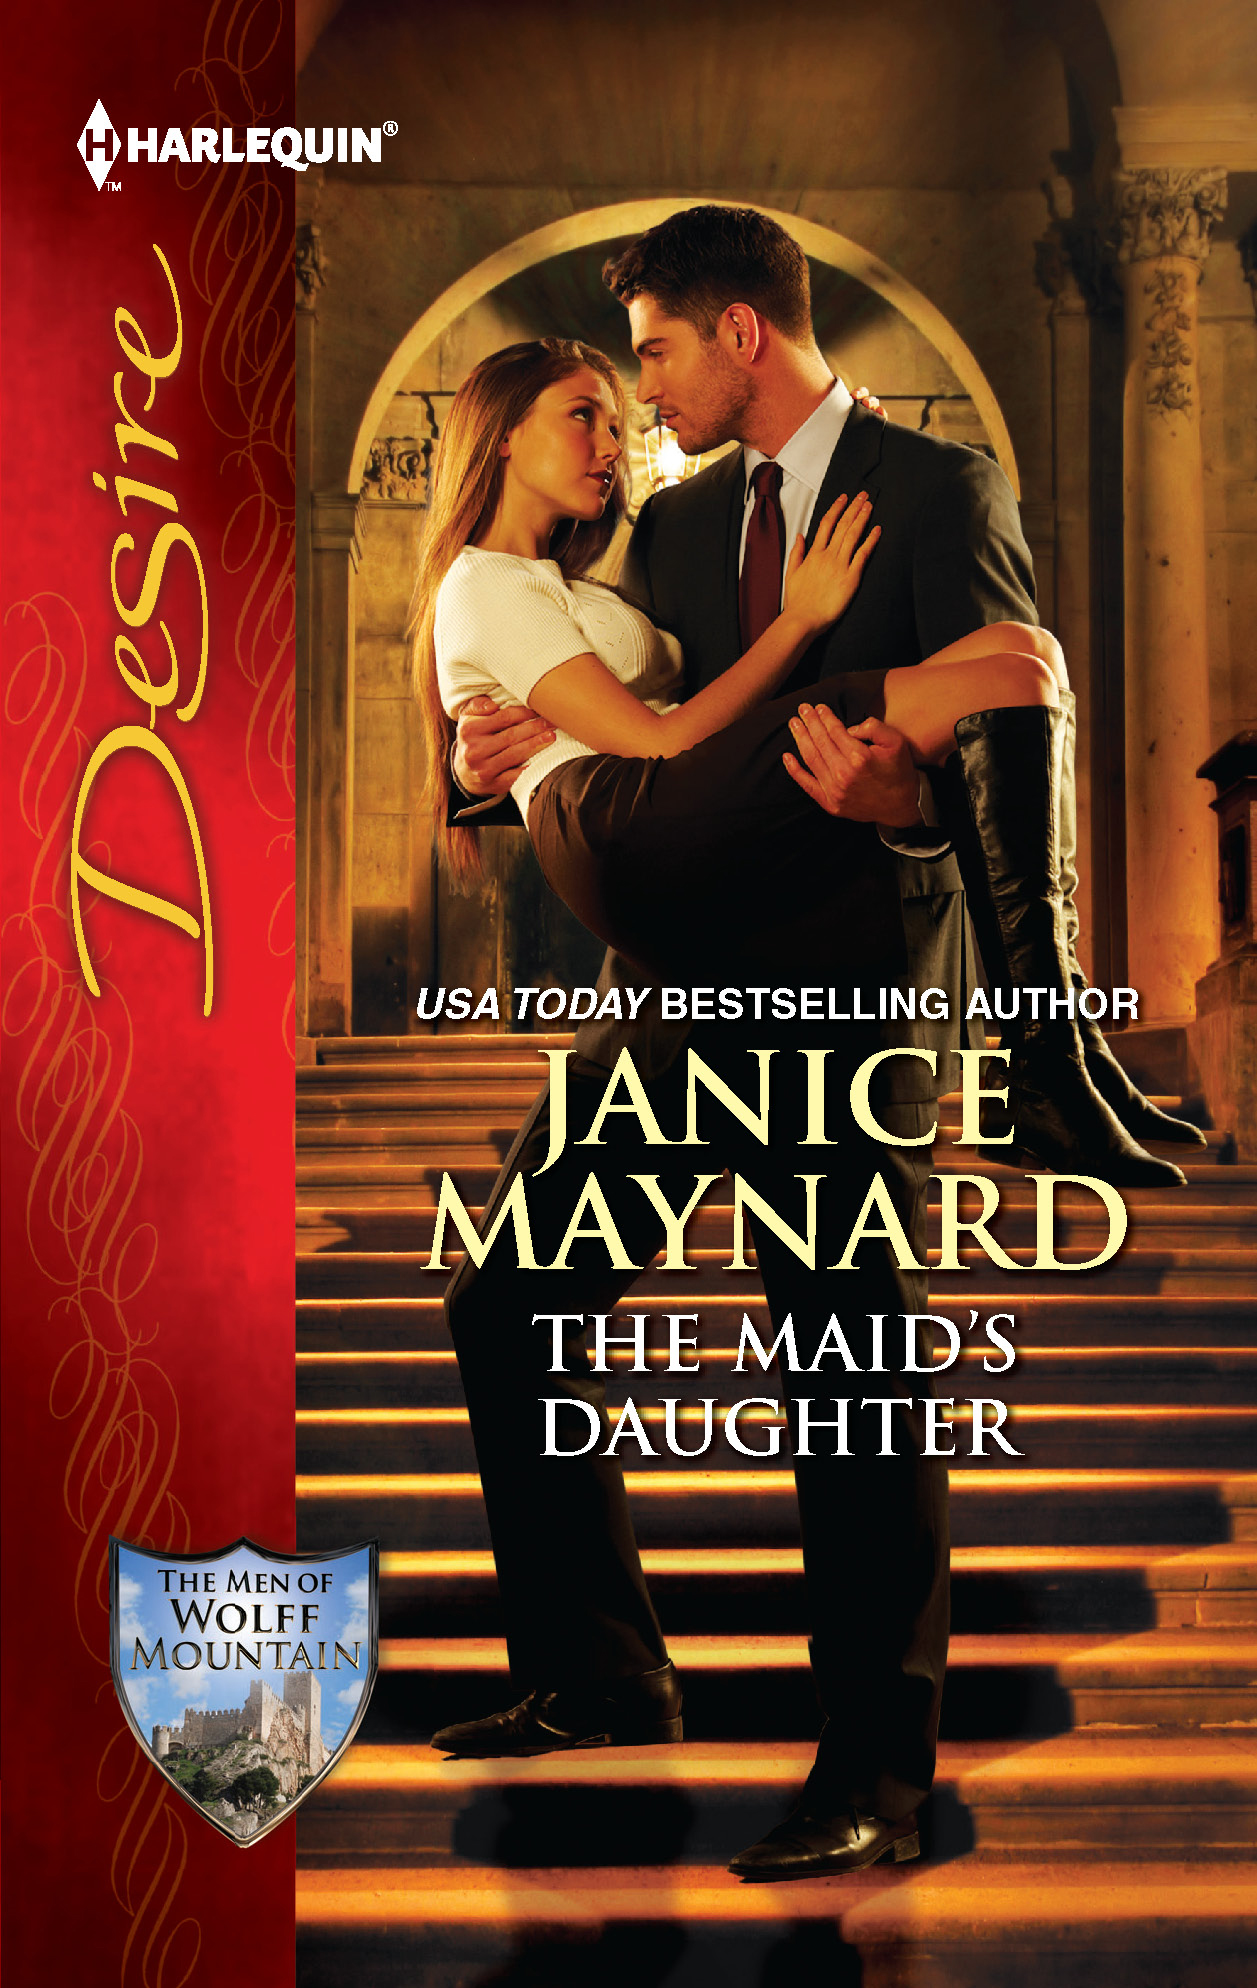 The Maid's Daughter By: Janice Maynard